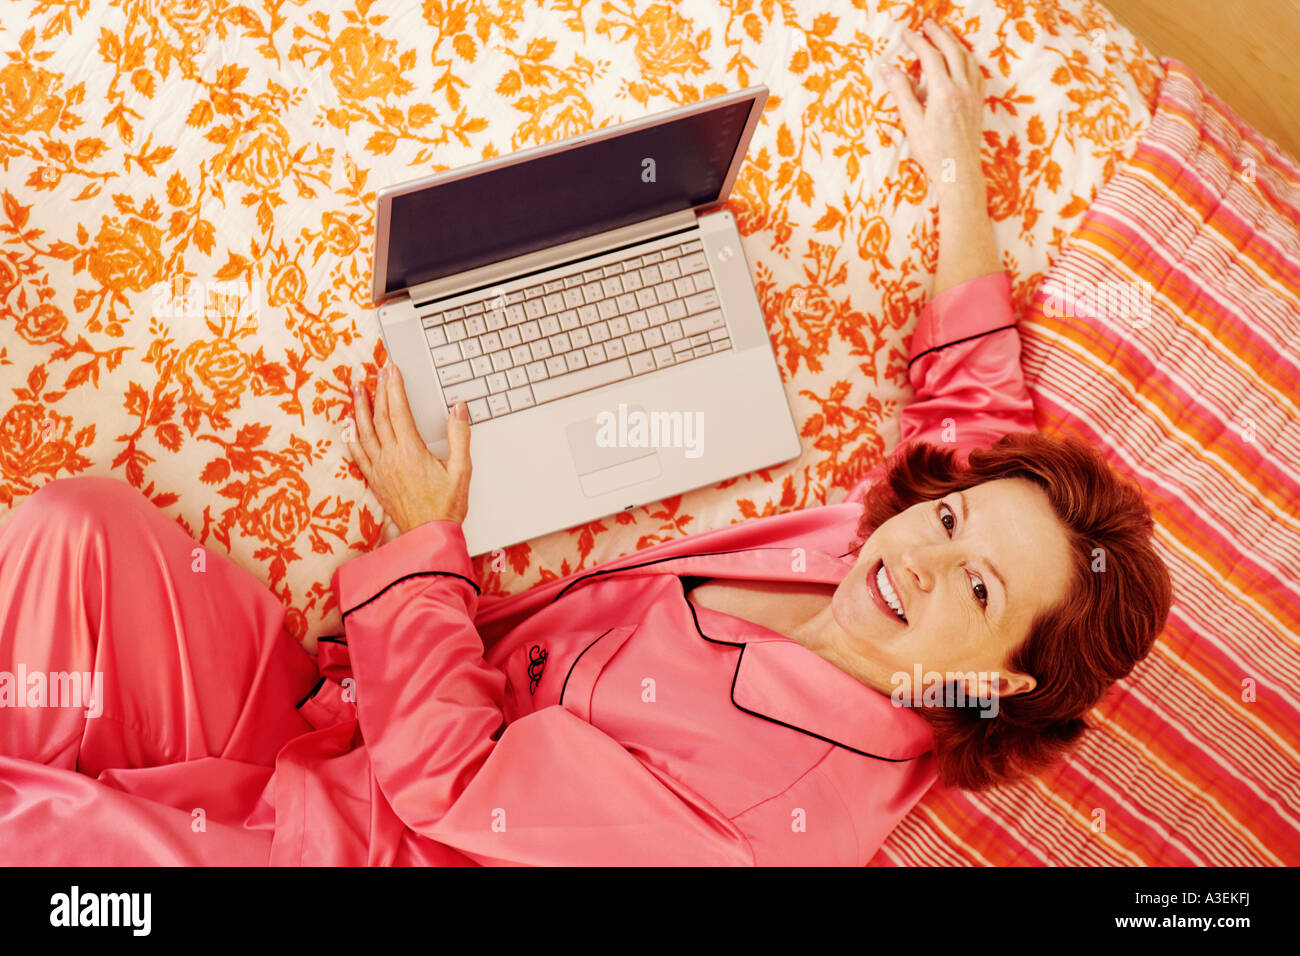 Portrait of a mature woman lying in bed with a laptop and smiling - Stock Image